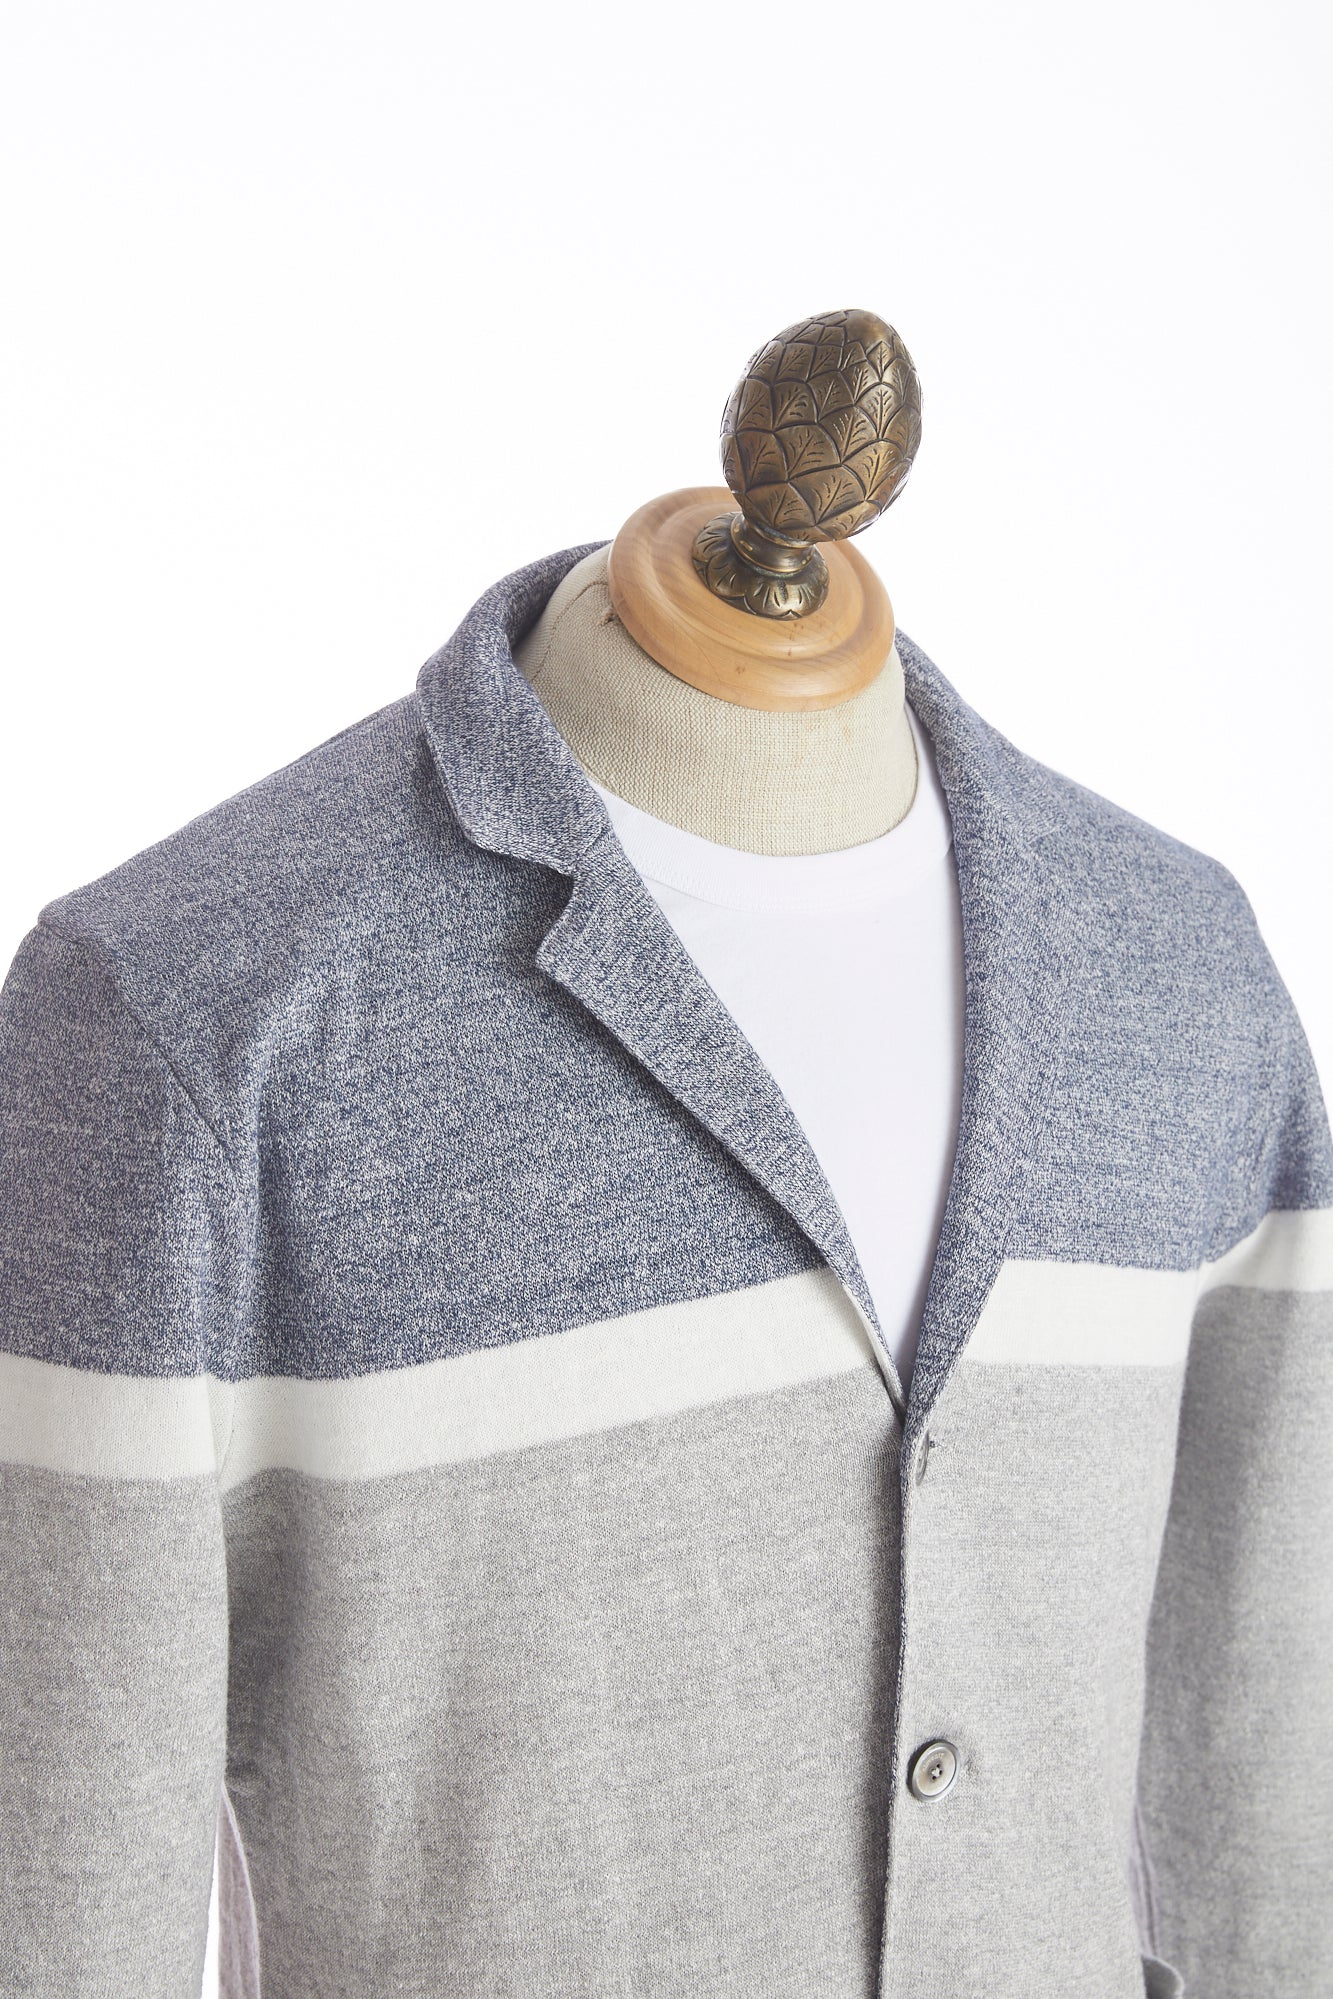 Eleventy Tri-Colour Linen Cotton Sweater Jacket - Sweaters - Eleventy - LALONDE's